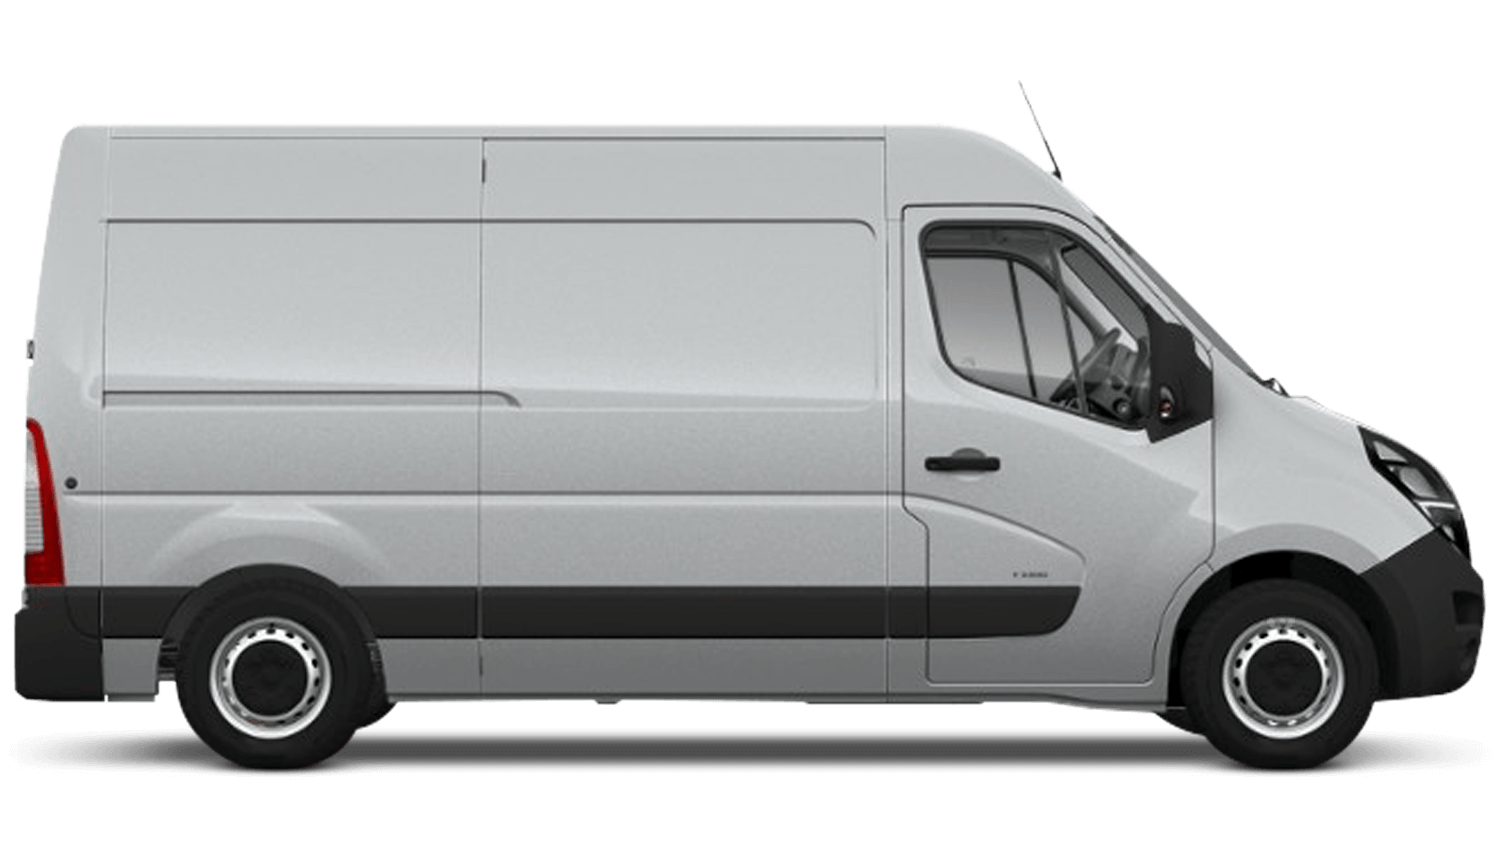 Halo Silver (Metallic) New Vauxhall Movano